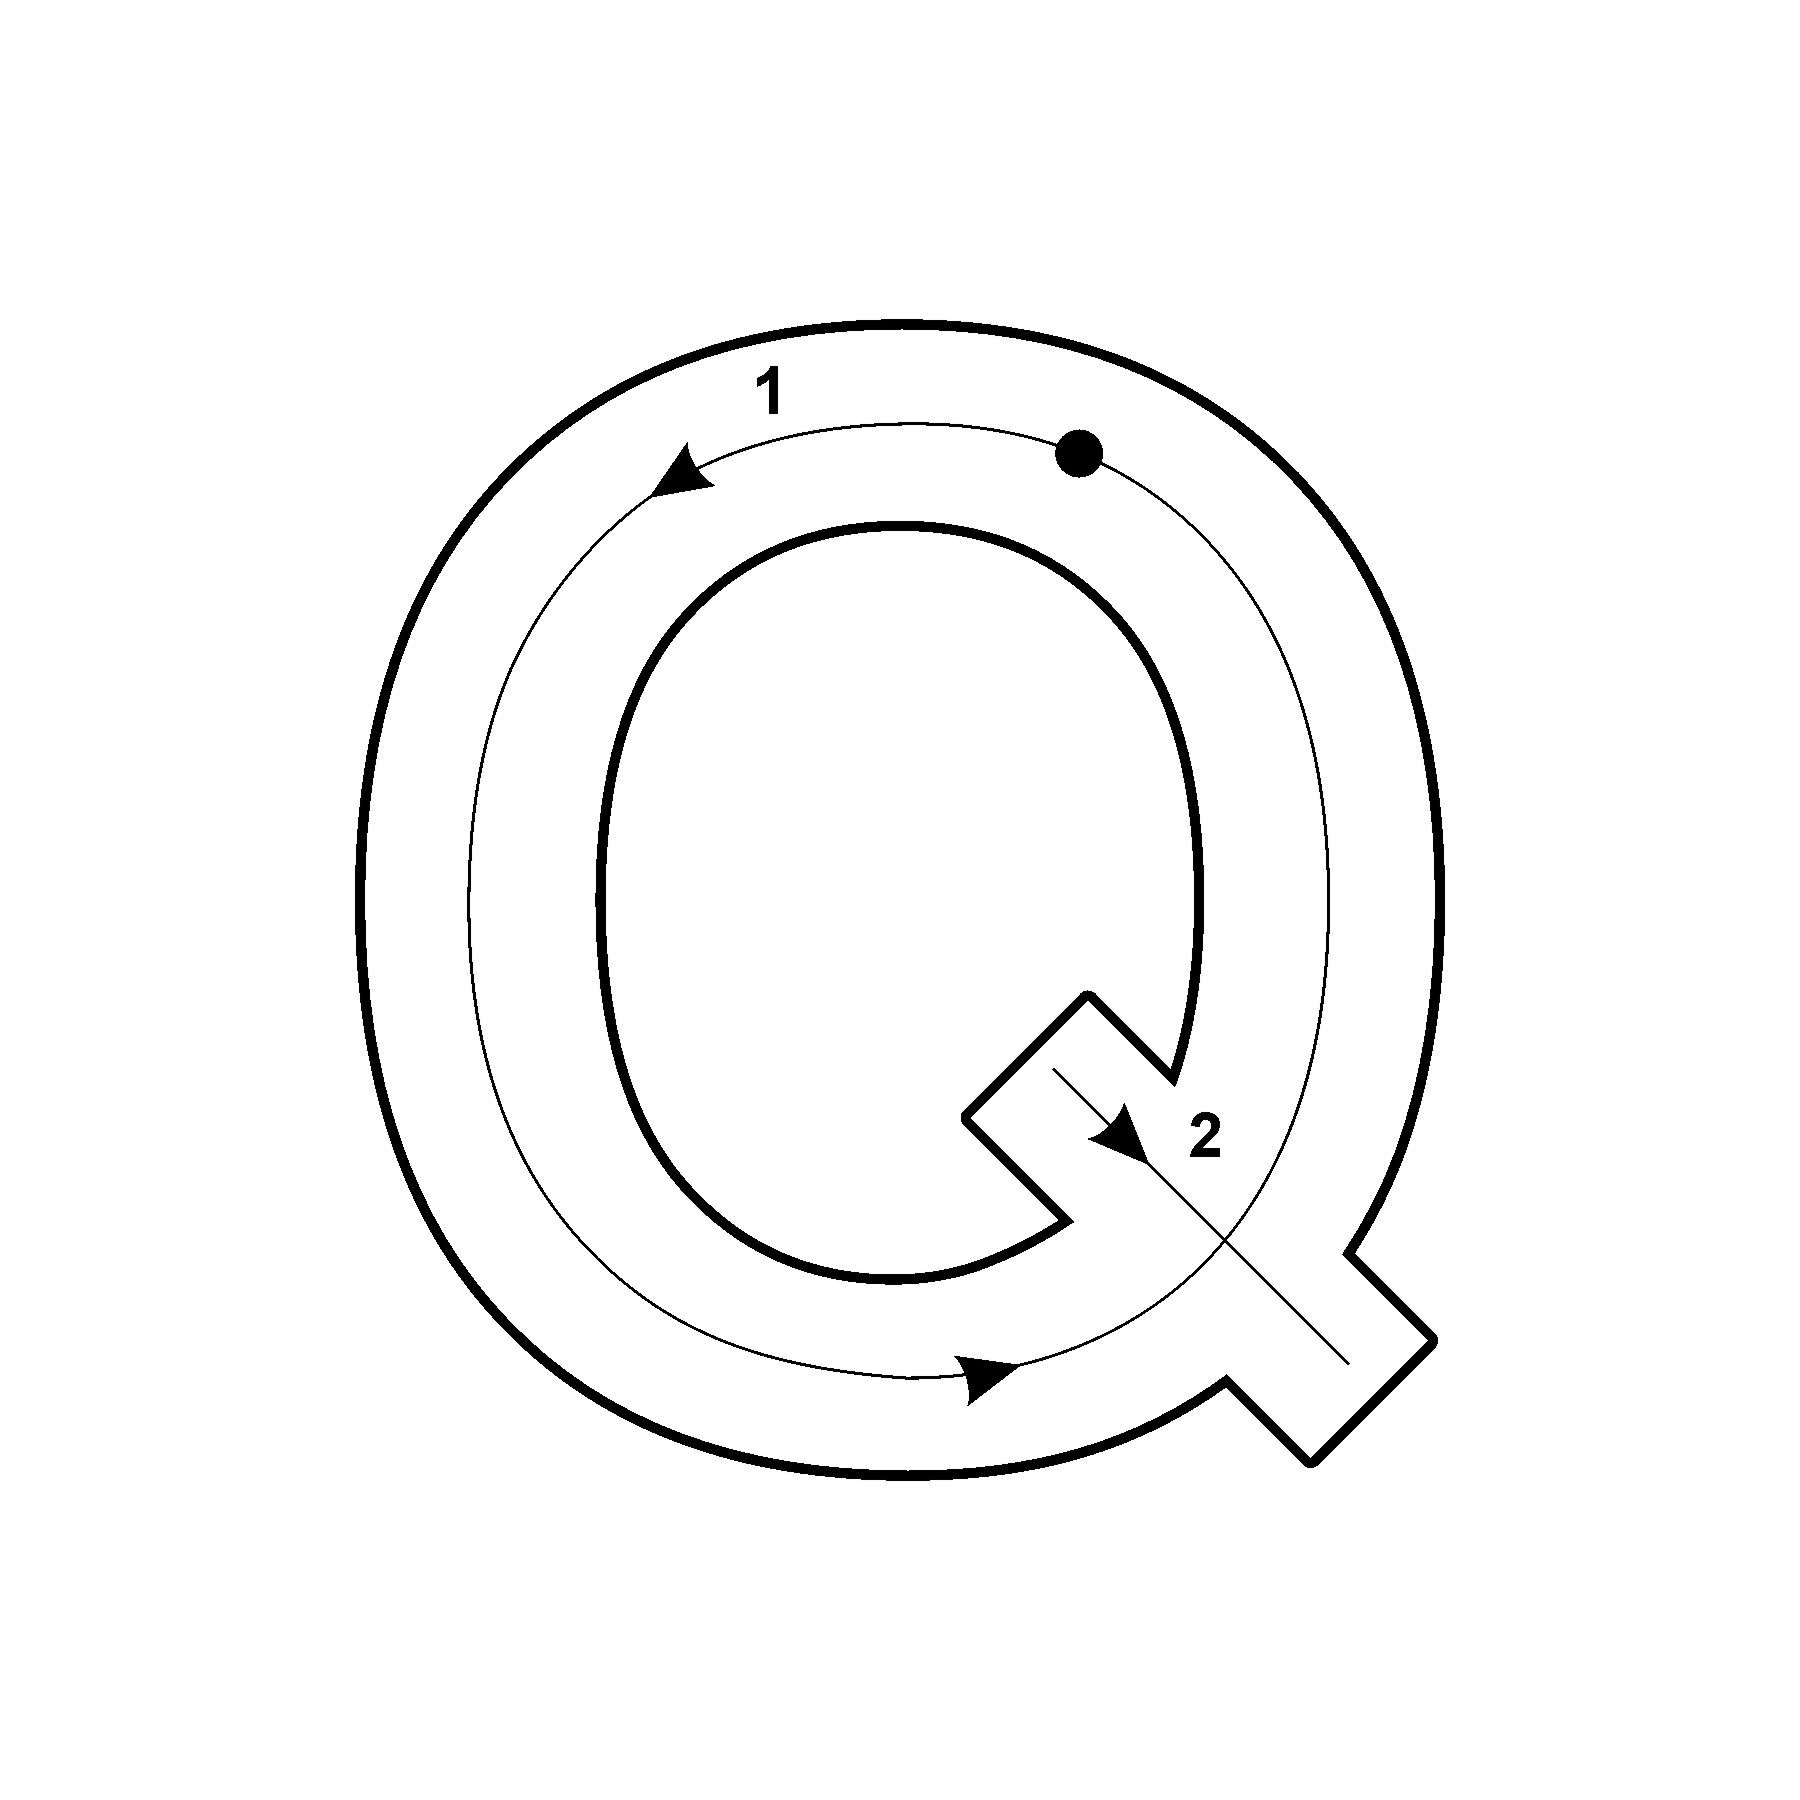 Capital Letter Q with Arrow Lettering, Capital letters